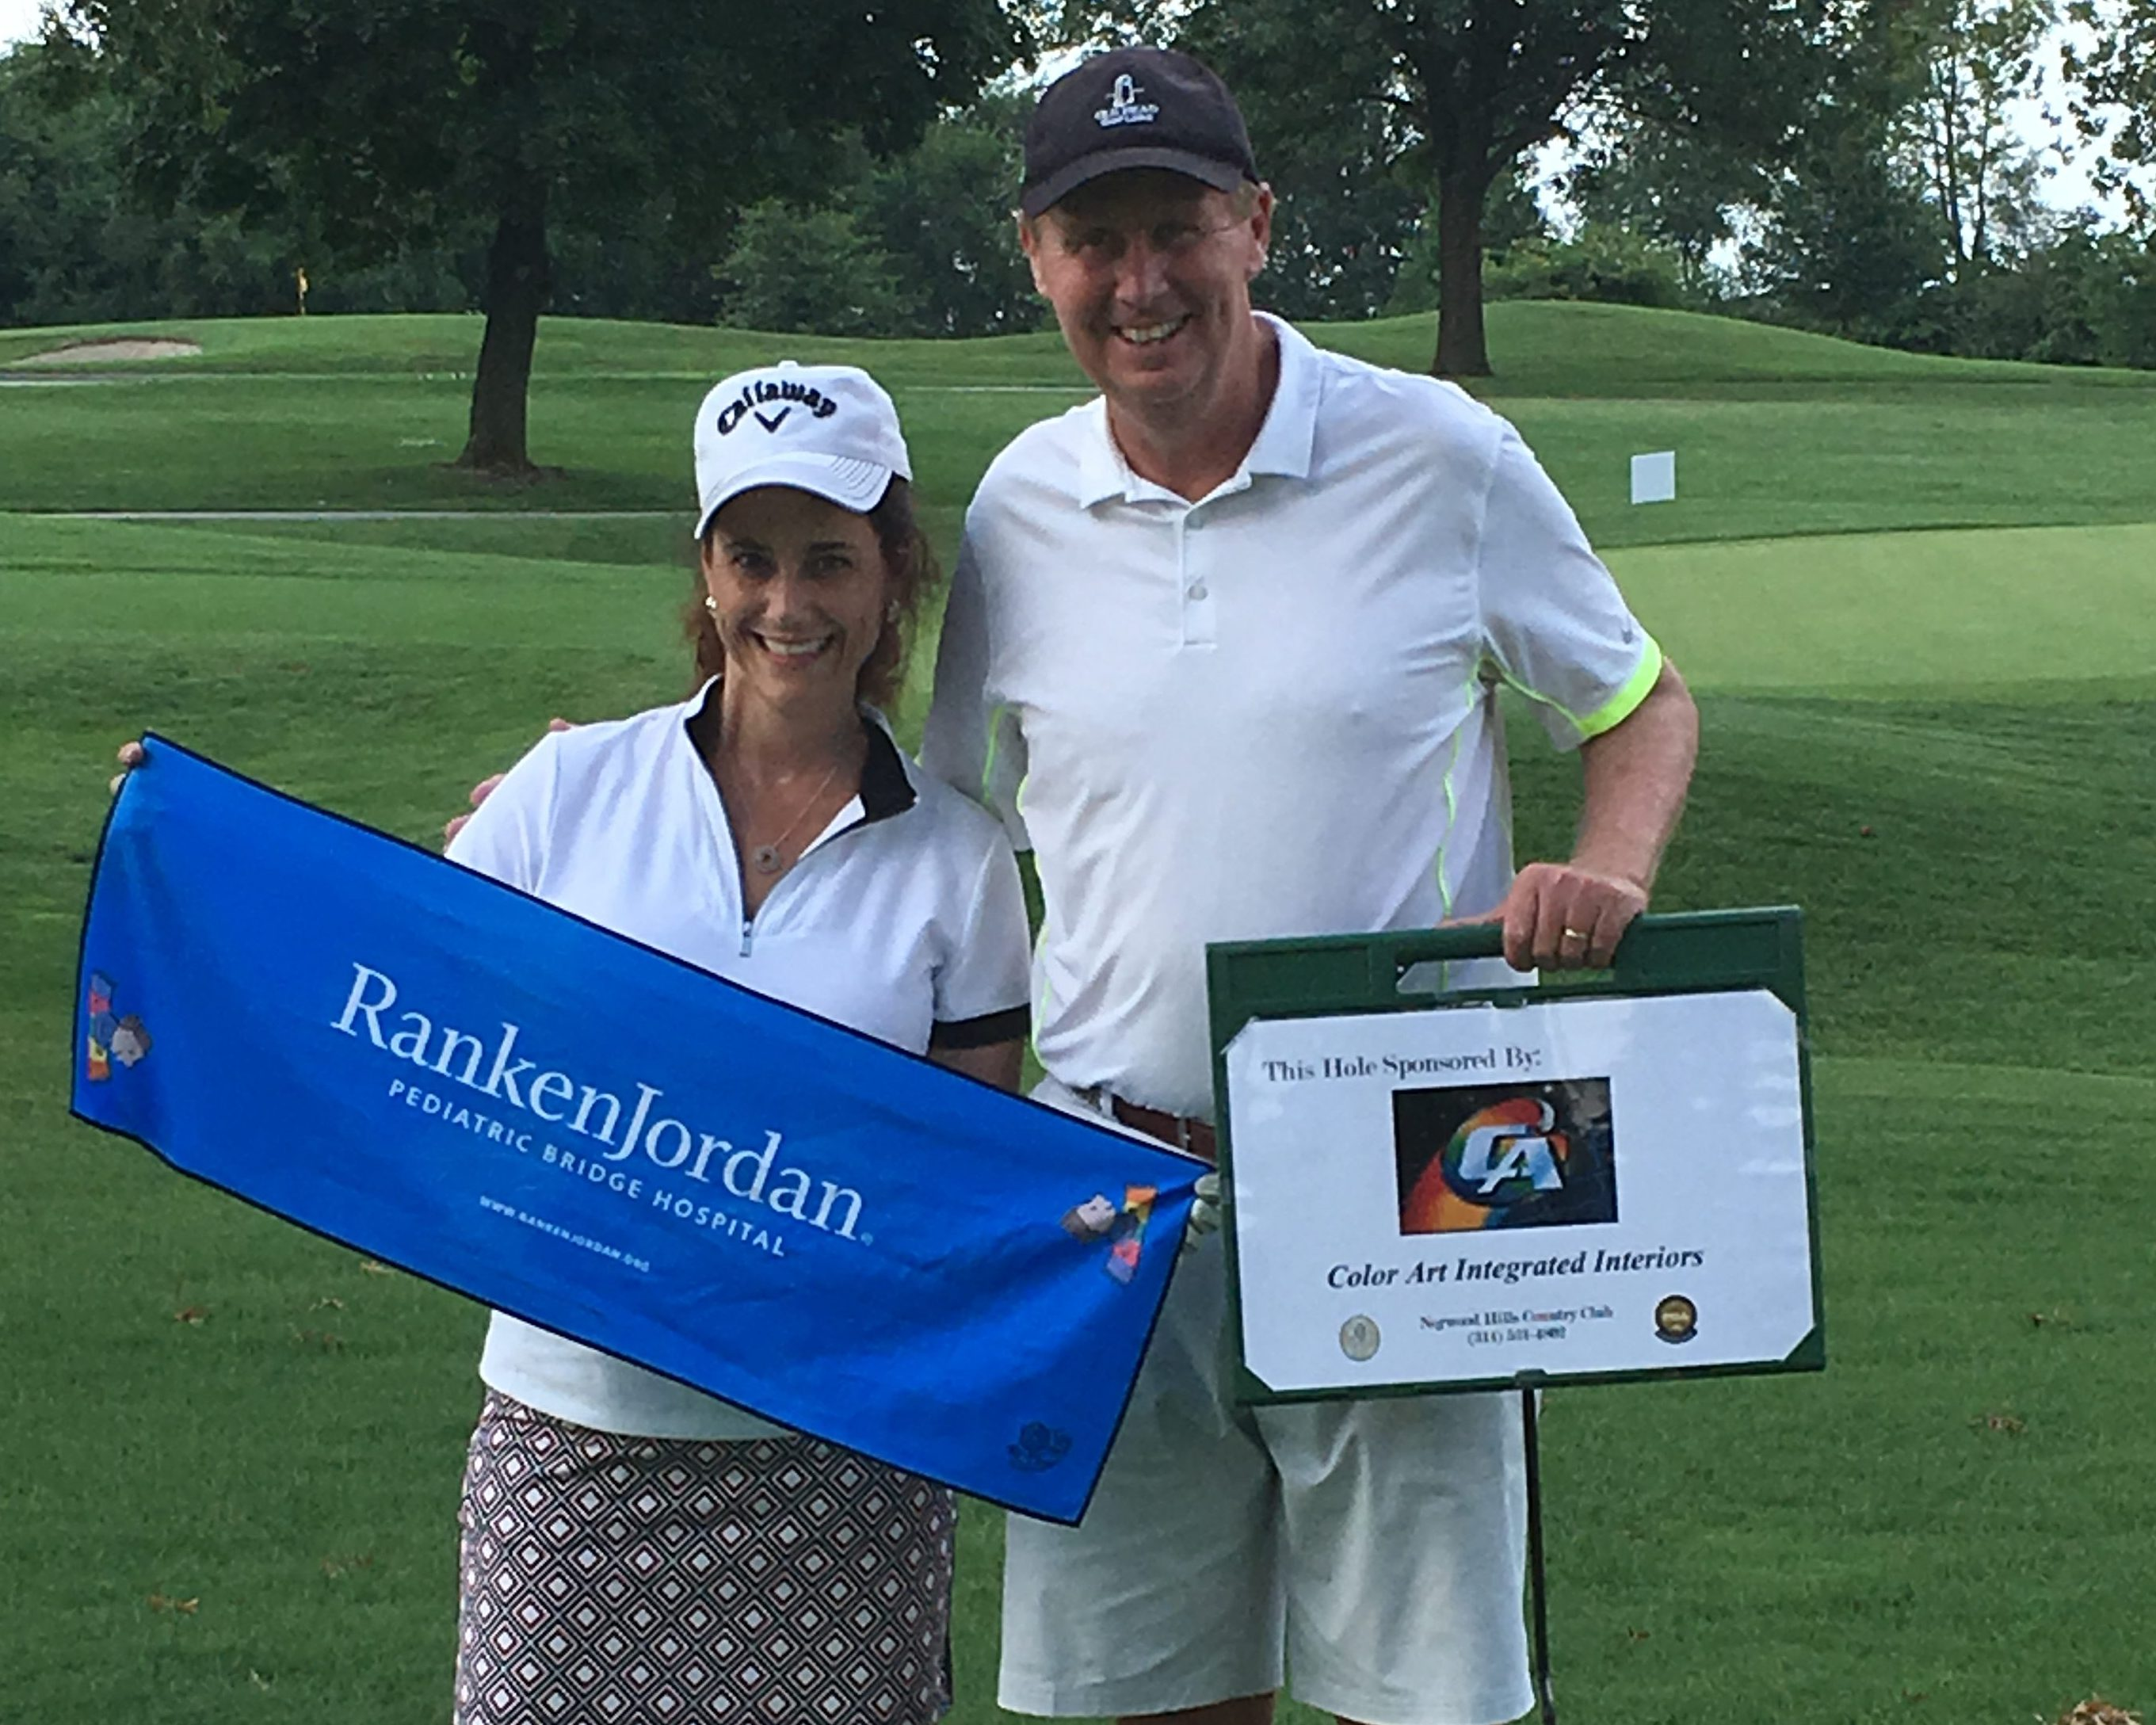 Ranken Jordan Golf Tournament